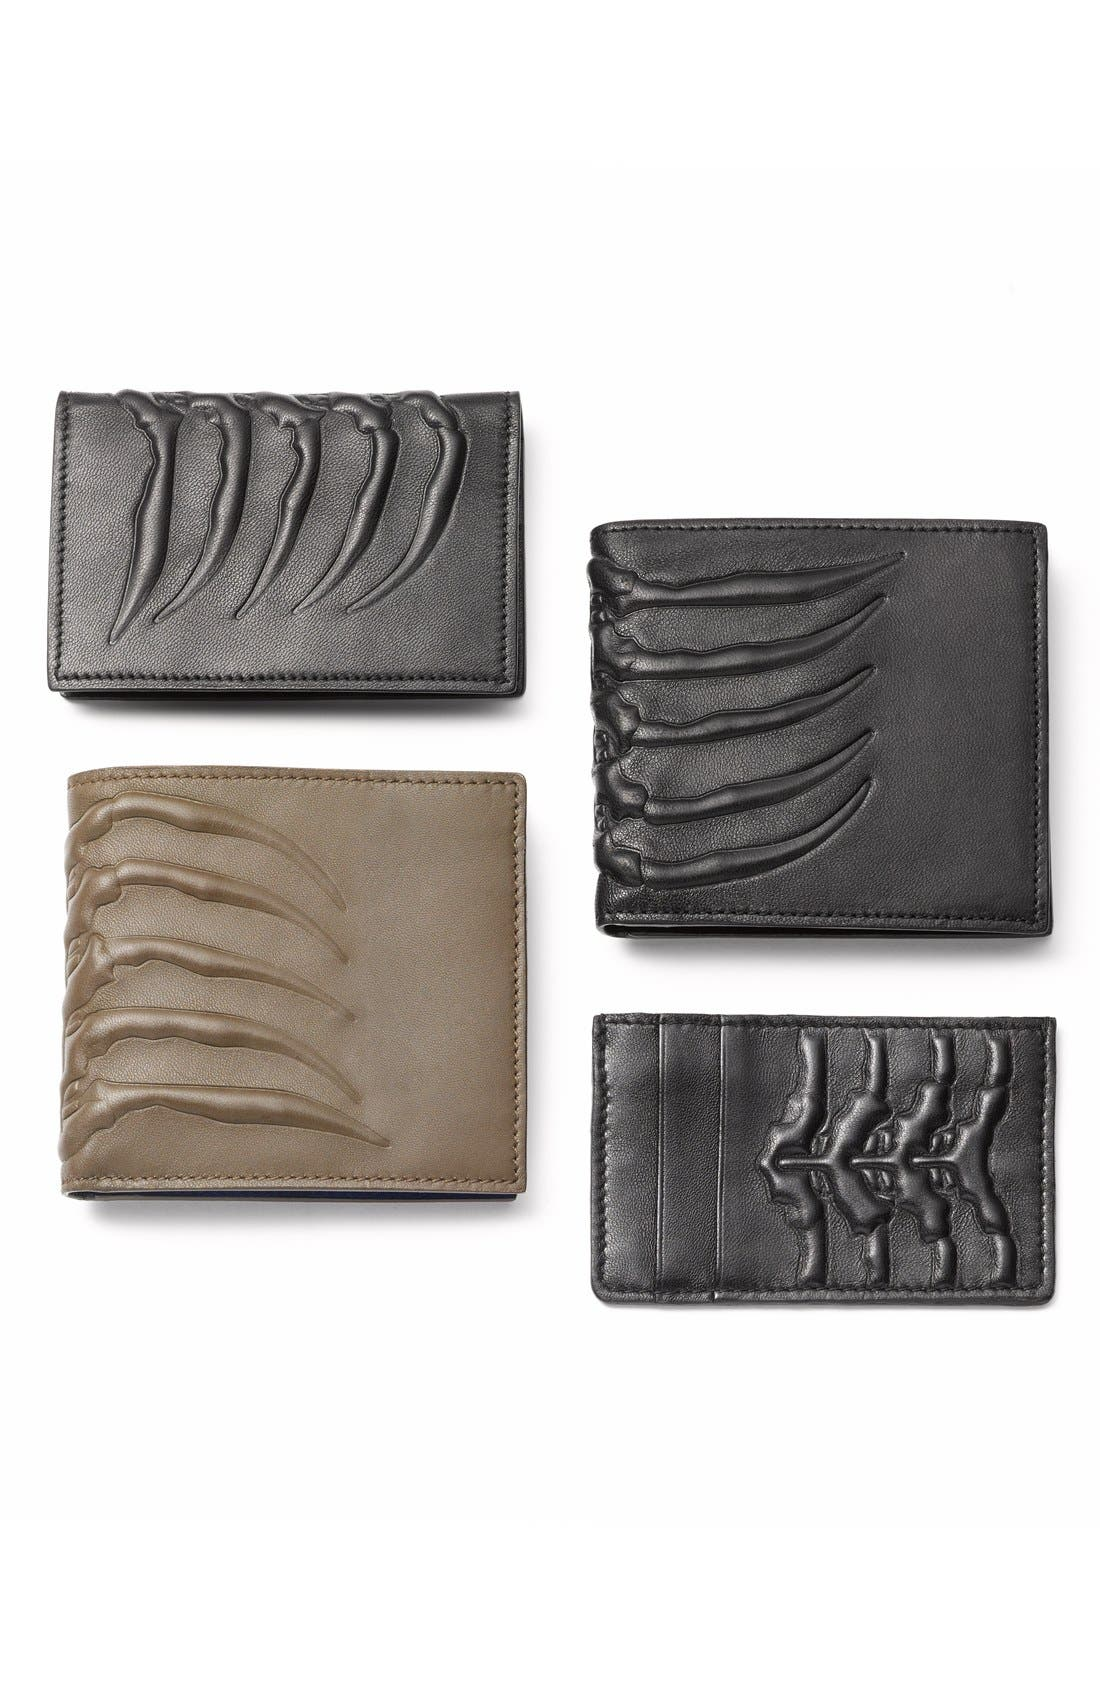 Rib Cage Leather Card Holder,                             Alternate thumbnail 5, color,                             BLACK